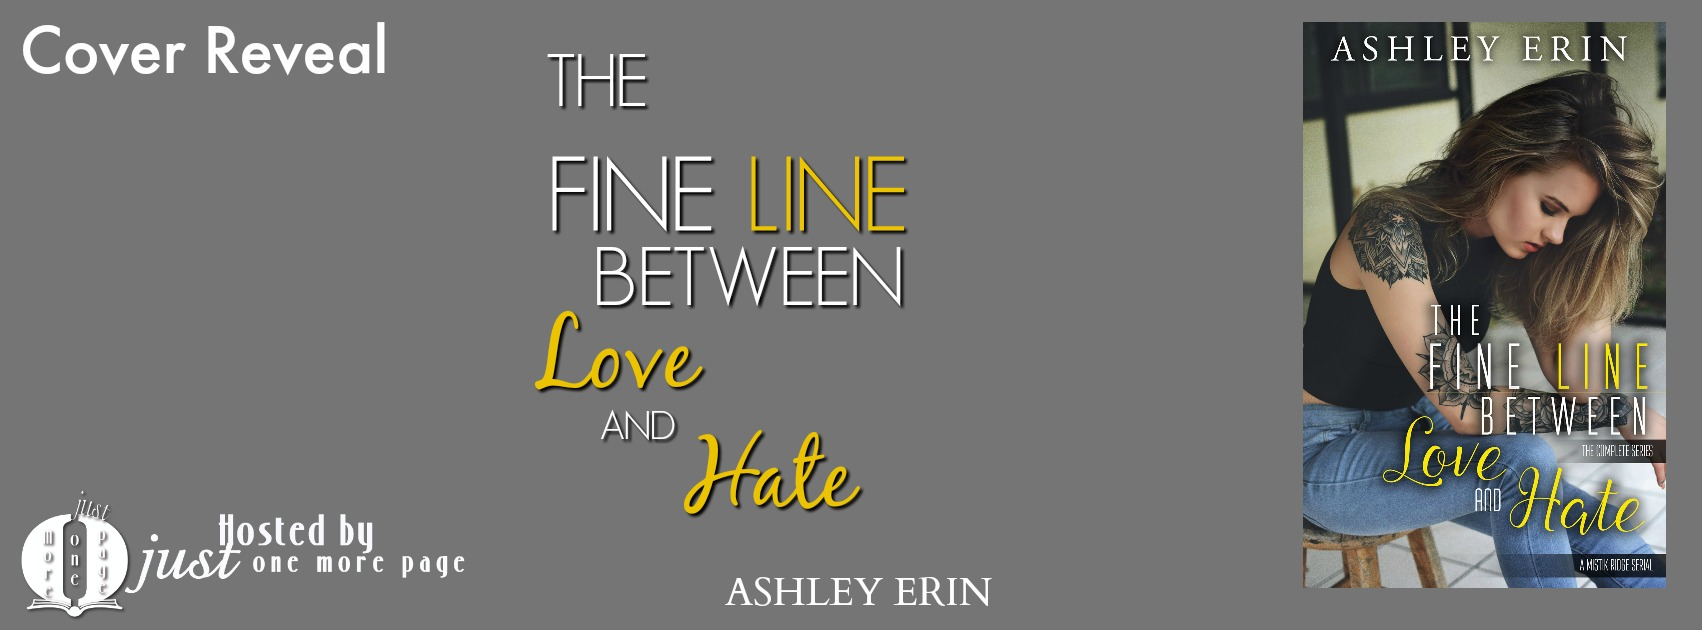 fine line between love and hate english literature essay Scientists prove it really is a thin line between love and hate one major difference between love and hate appears to be in the fact that large parts of the.